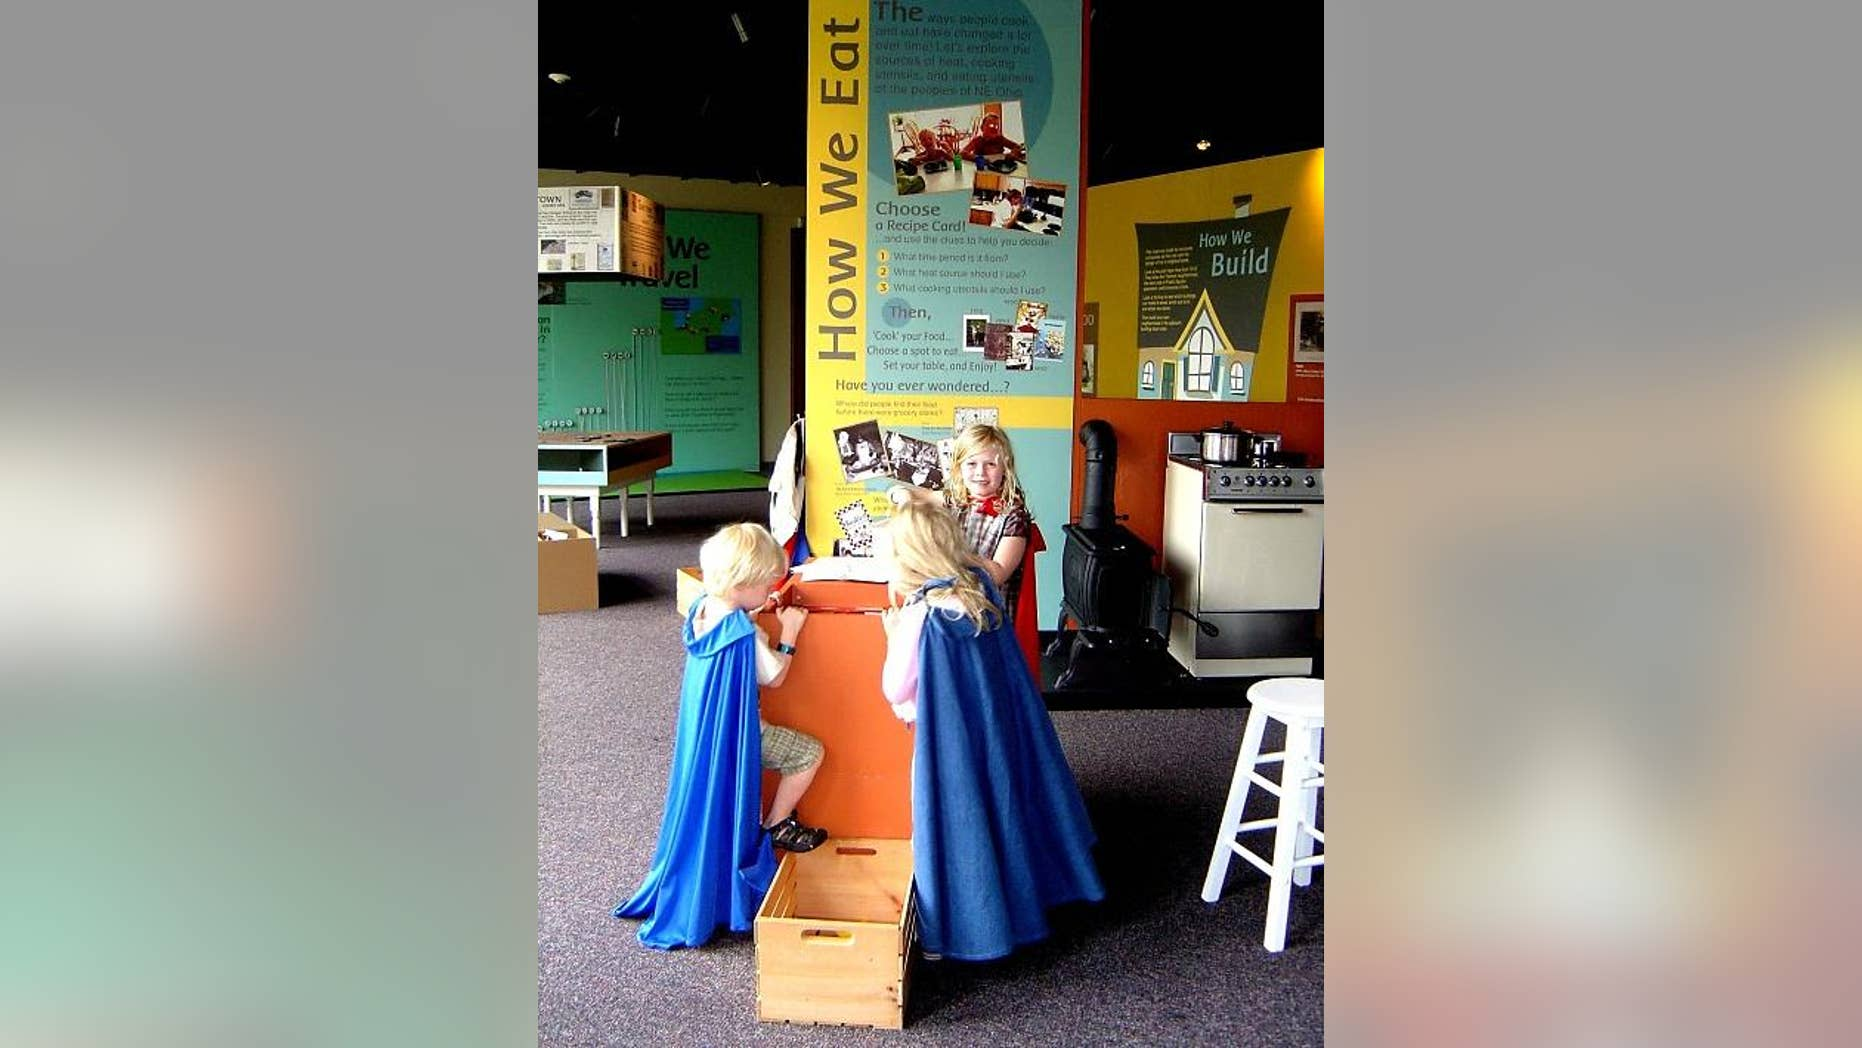 The family friendly Cleveland History Center even has a hands-on 'Kidzibits' attraction.